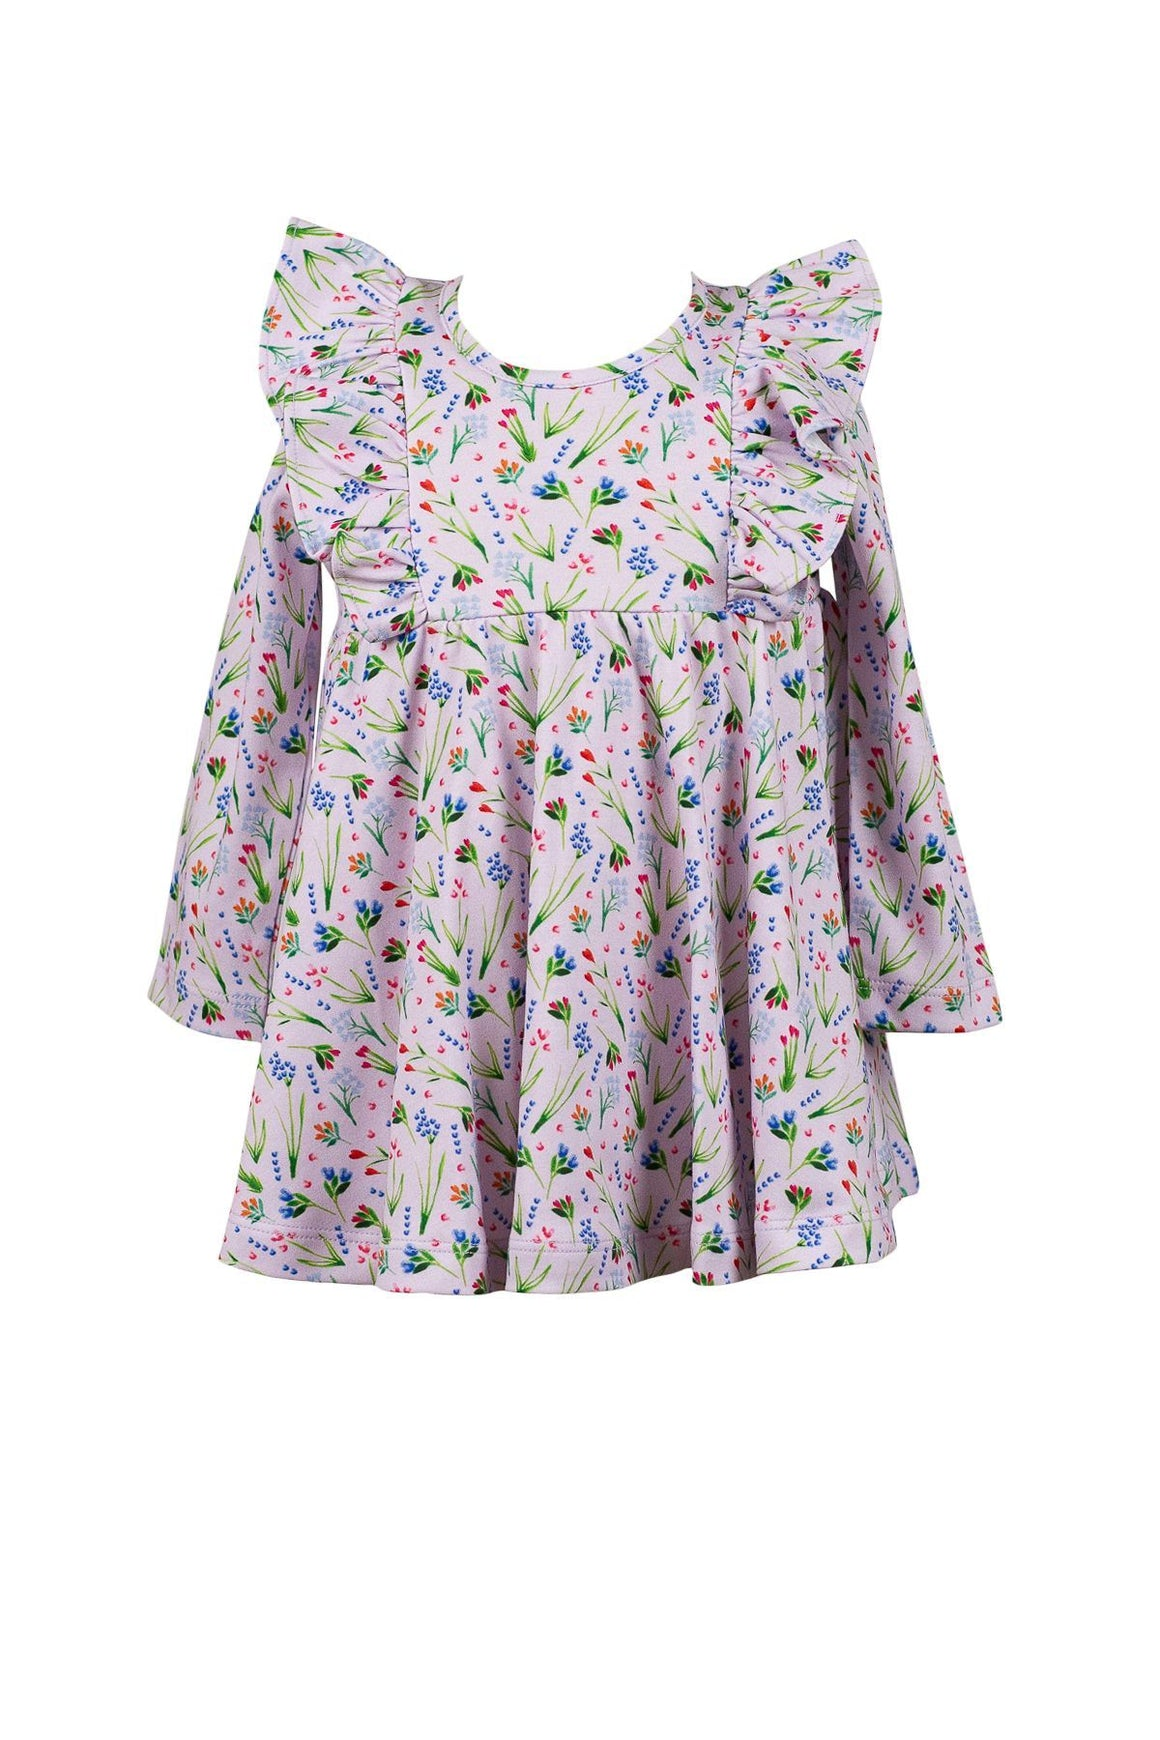 The Proper Peony Apparel The Proper Peony Parkside Collecton Finley Floral Lavender Twirl Dress